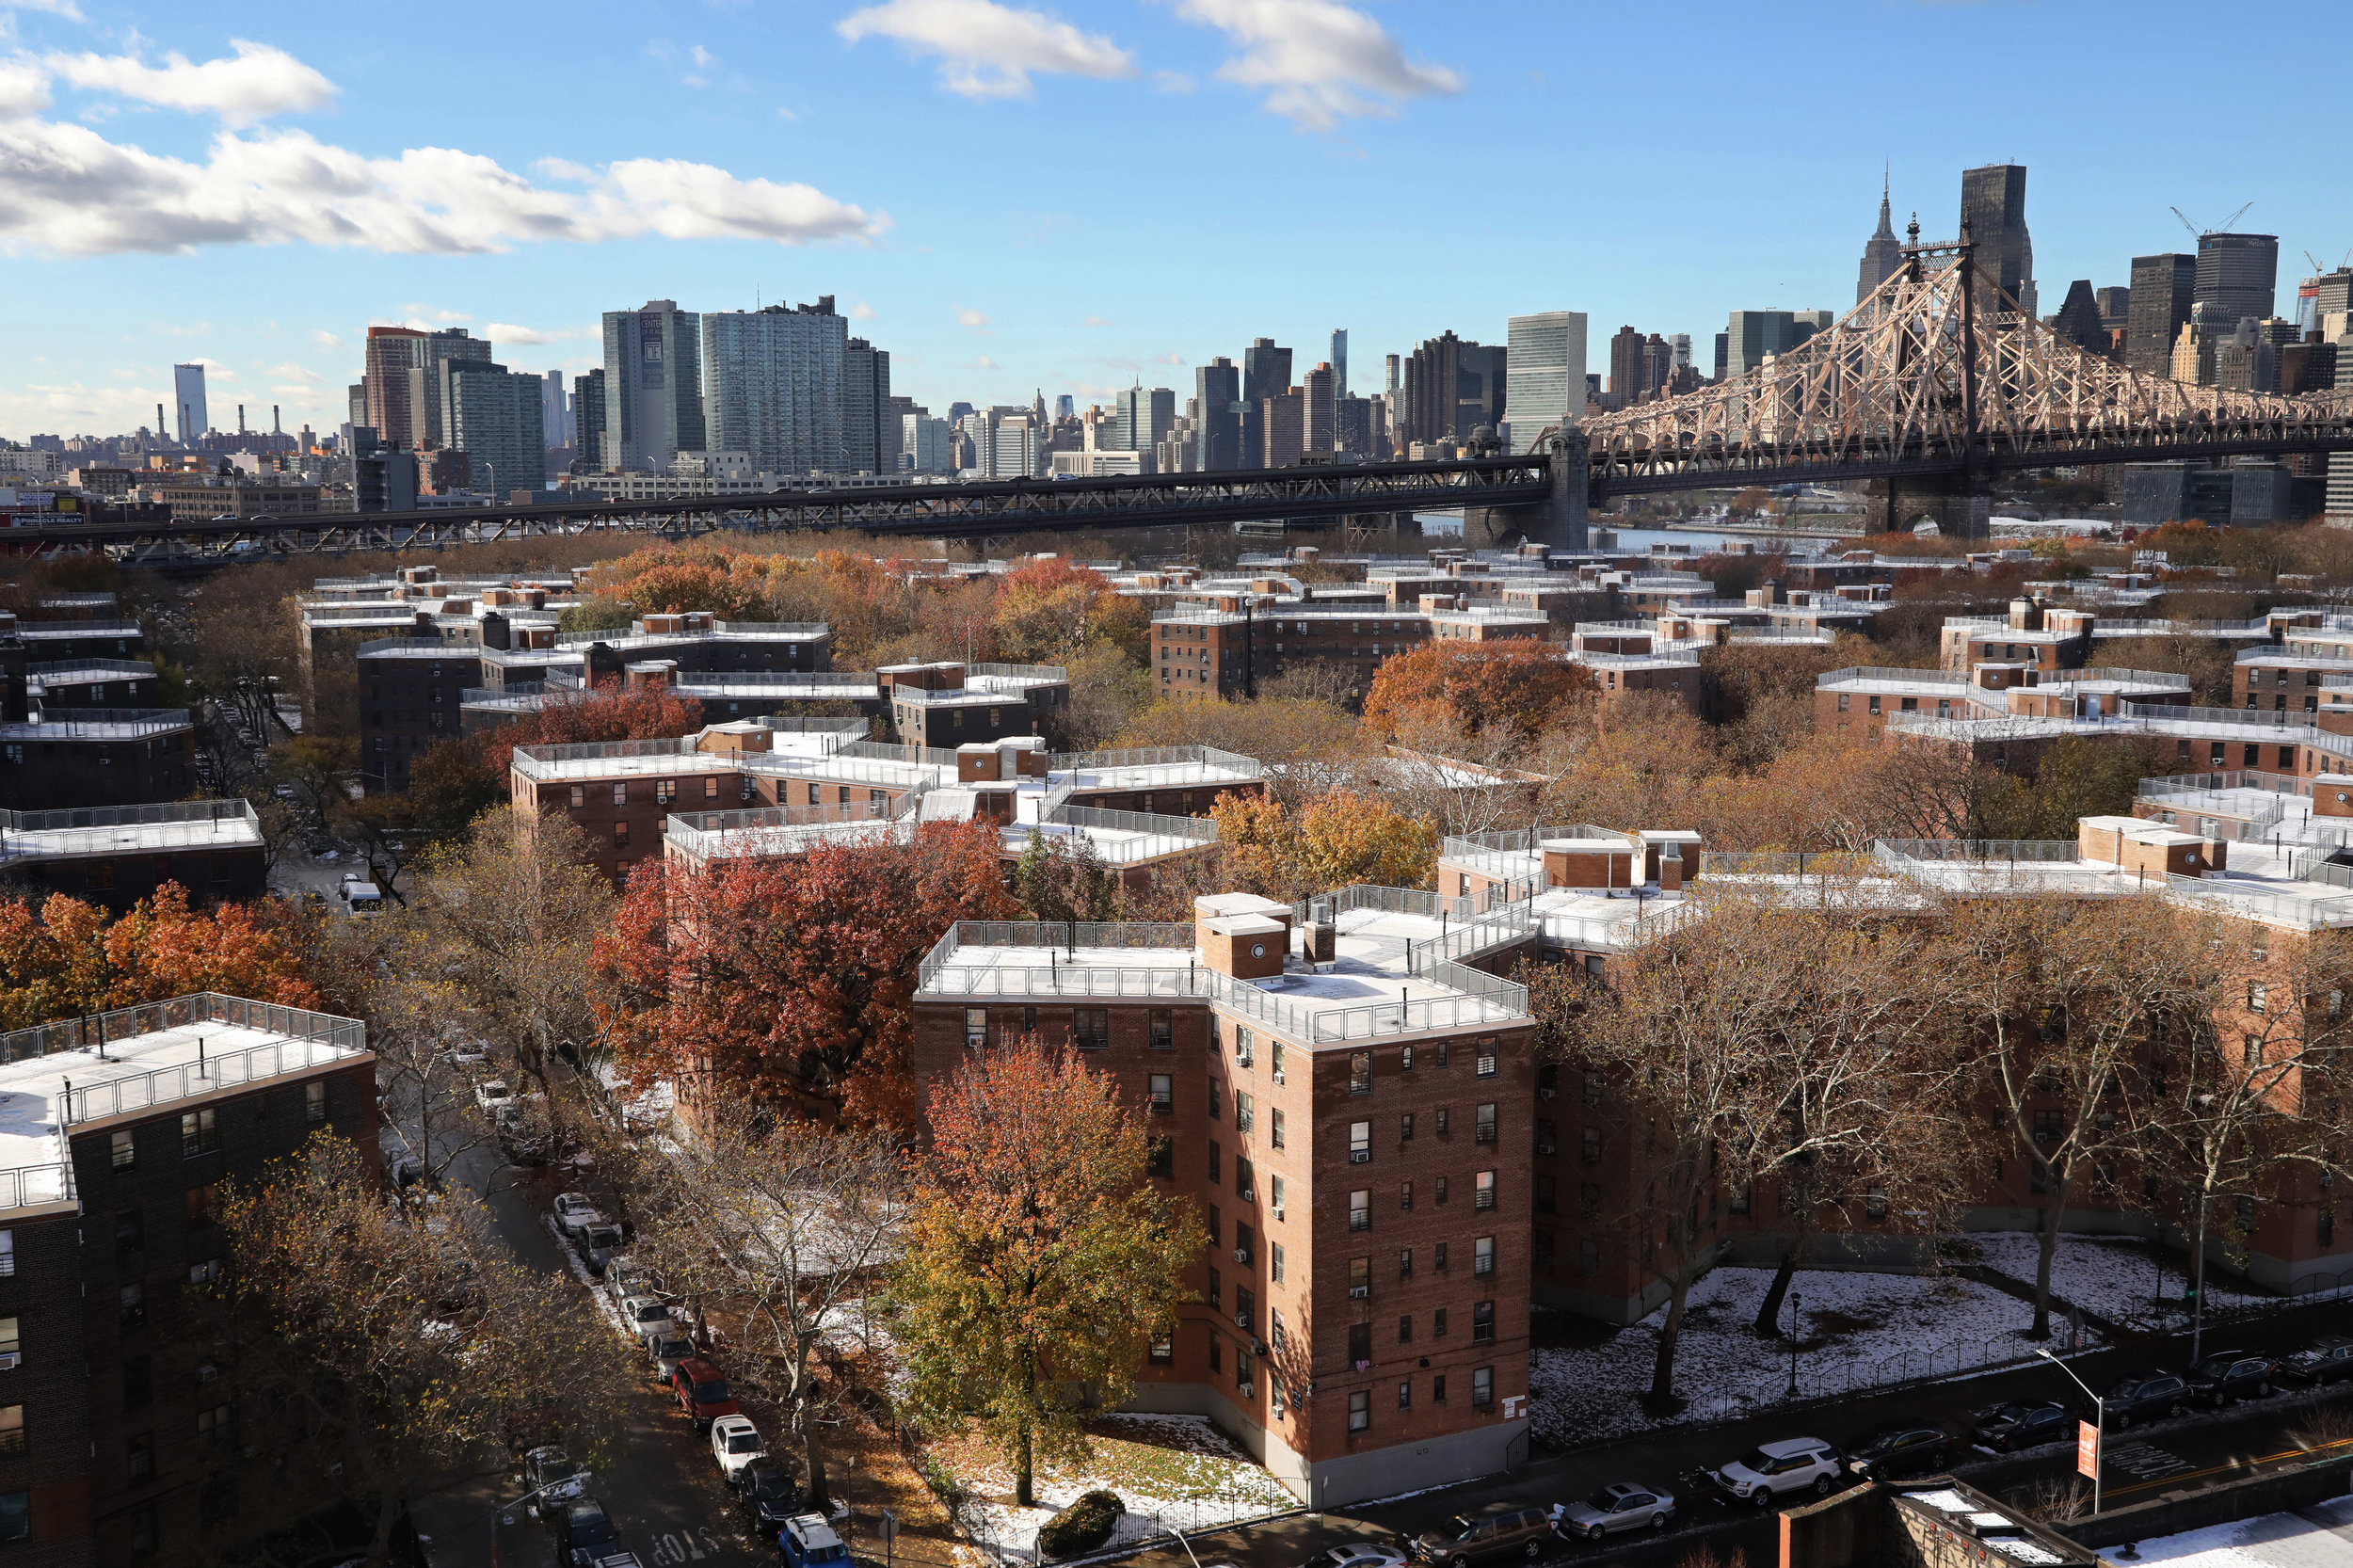 Hundreds of tenants in the Queensbridge Houses experienced heat and hot water outages between Oct. 1, 2018 and May 31, 2019, according to data obtained by The Legal Aid Society. AP Photo/Mark Lennihan.